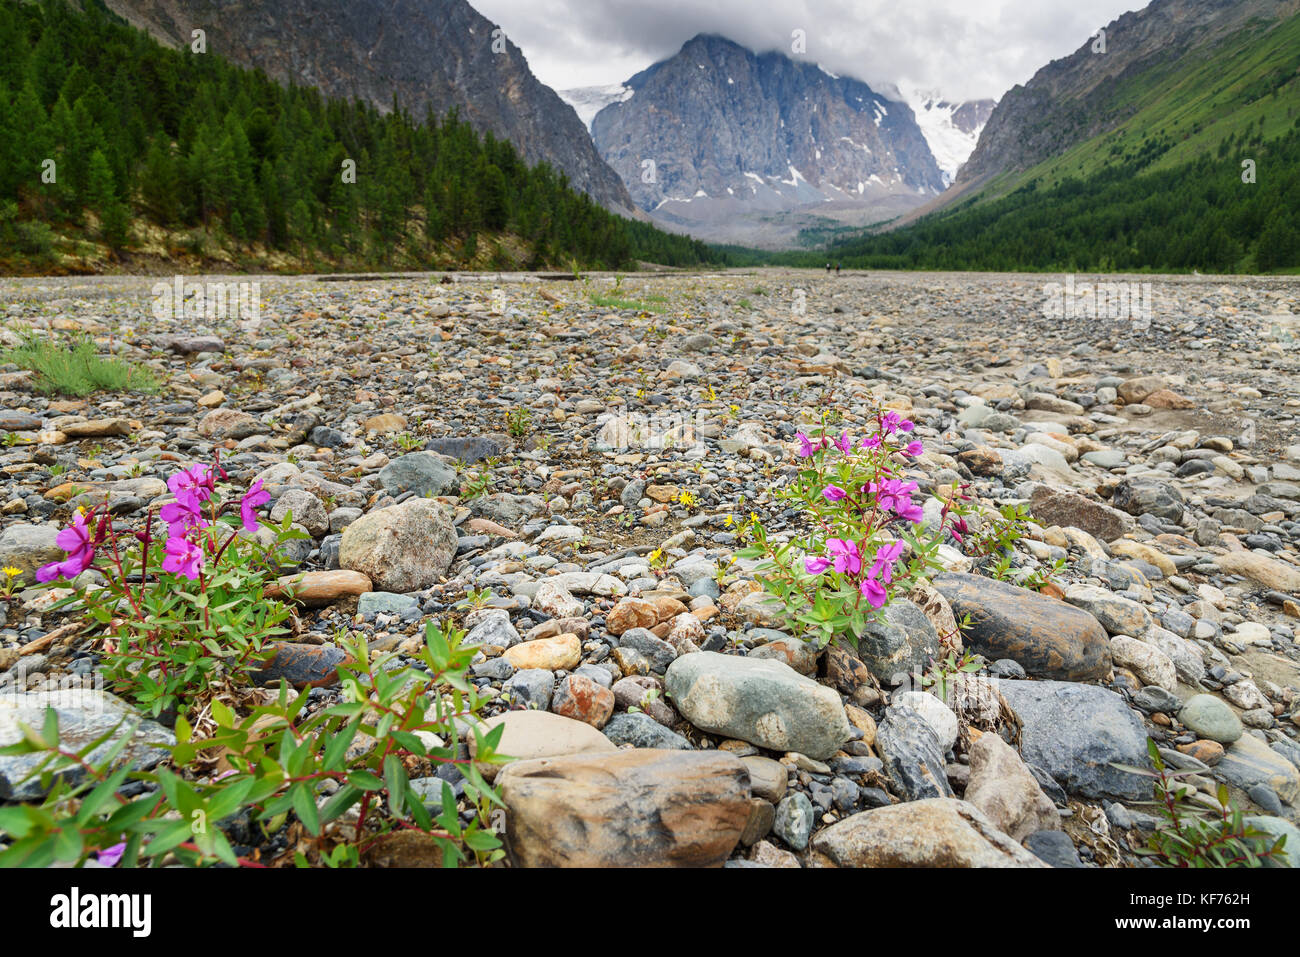 Chamaenerion latifolium fowers in Aktru valley. Altai Republic, Siberia. Russia Stock Photo